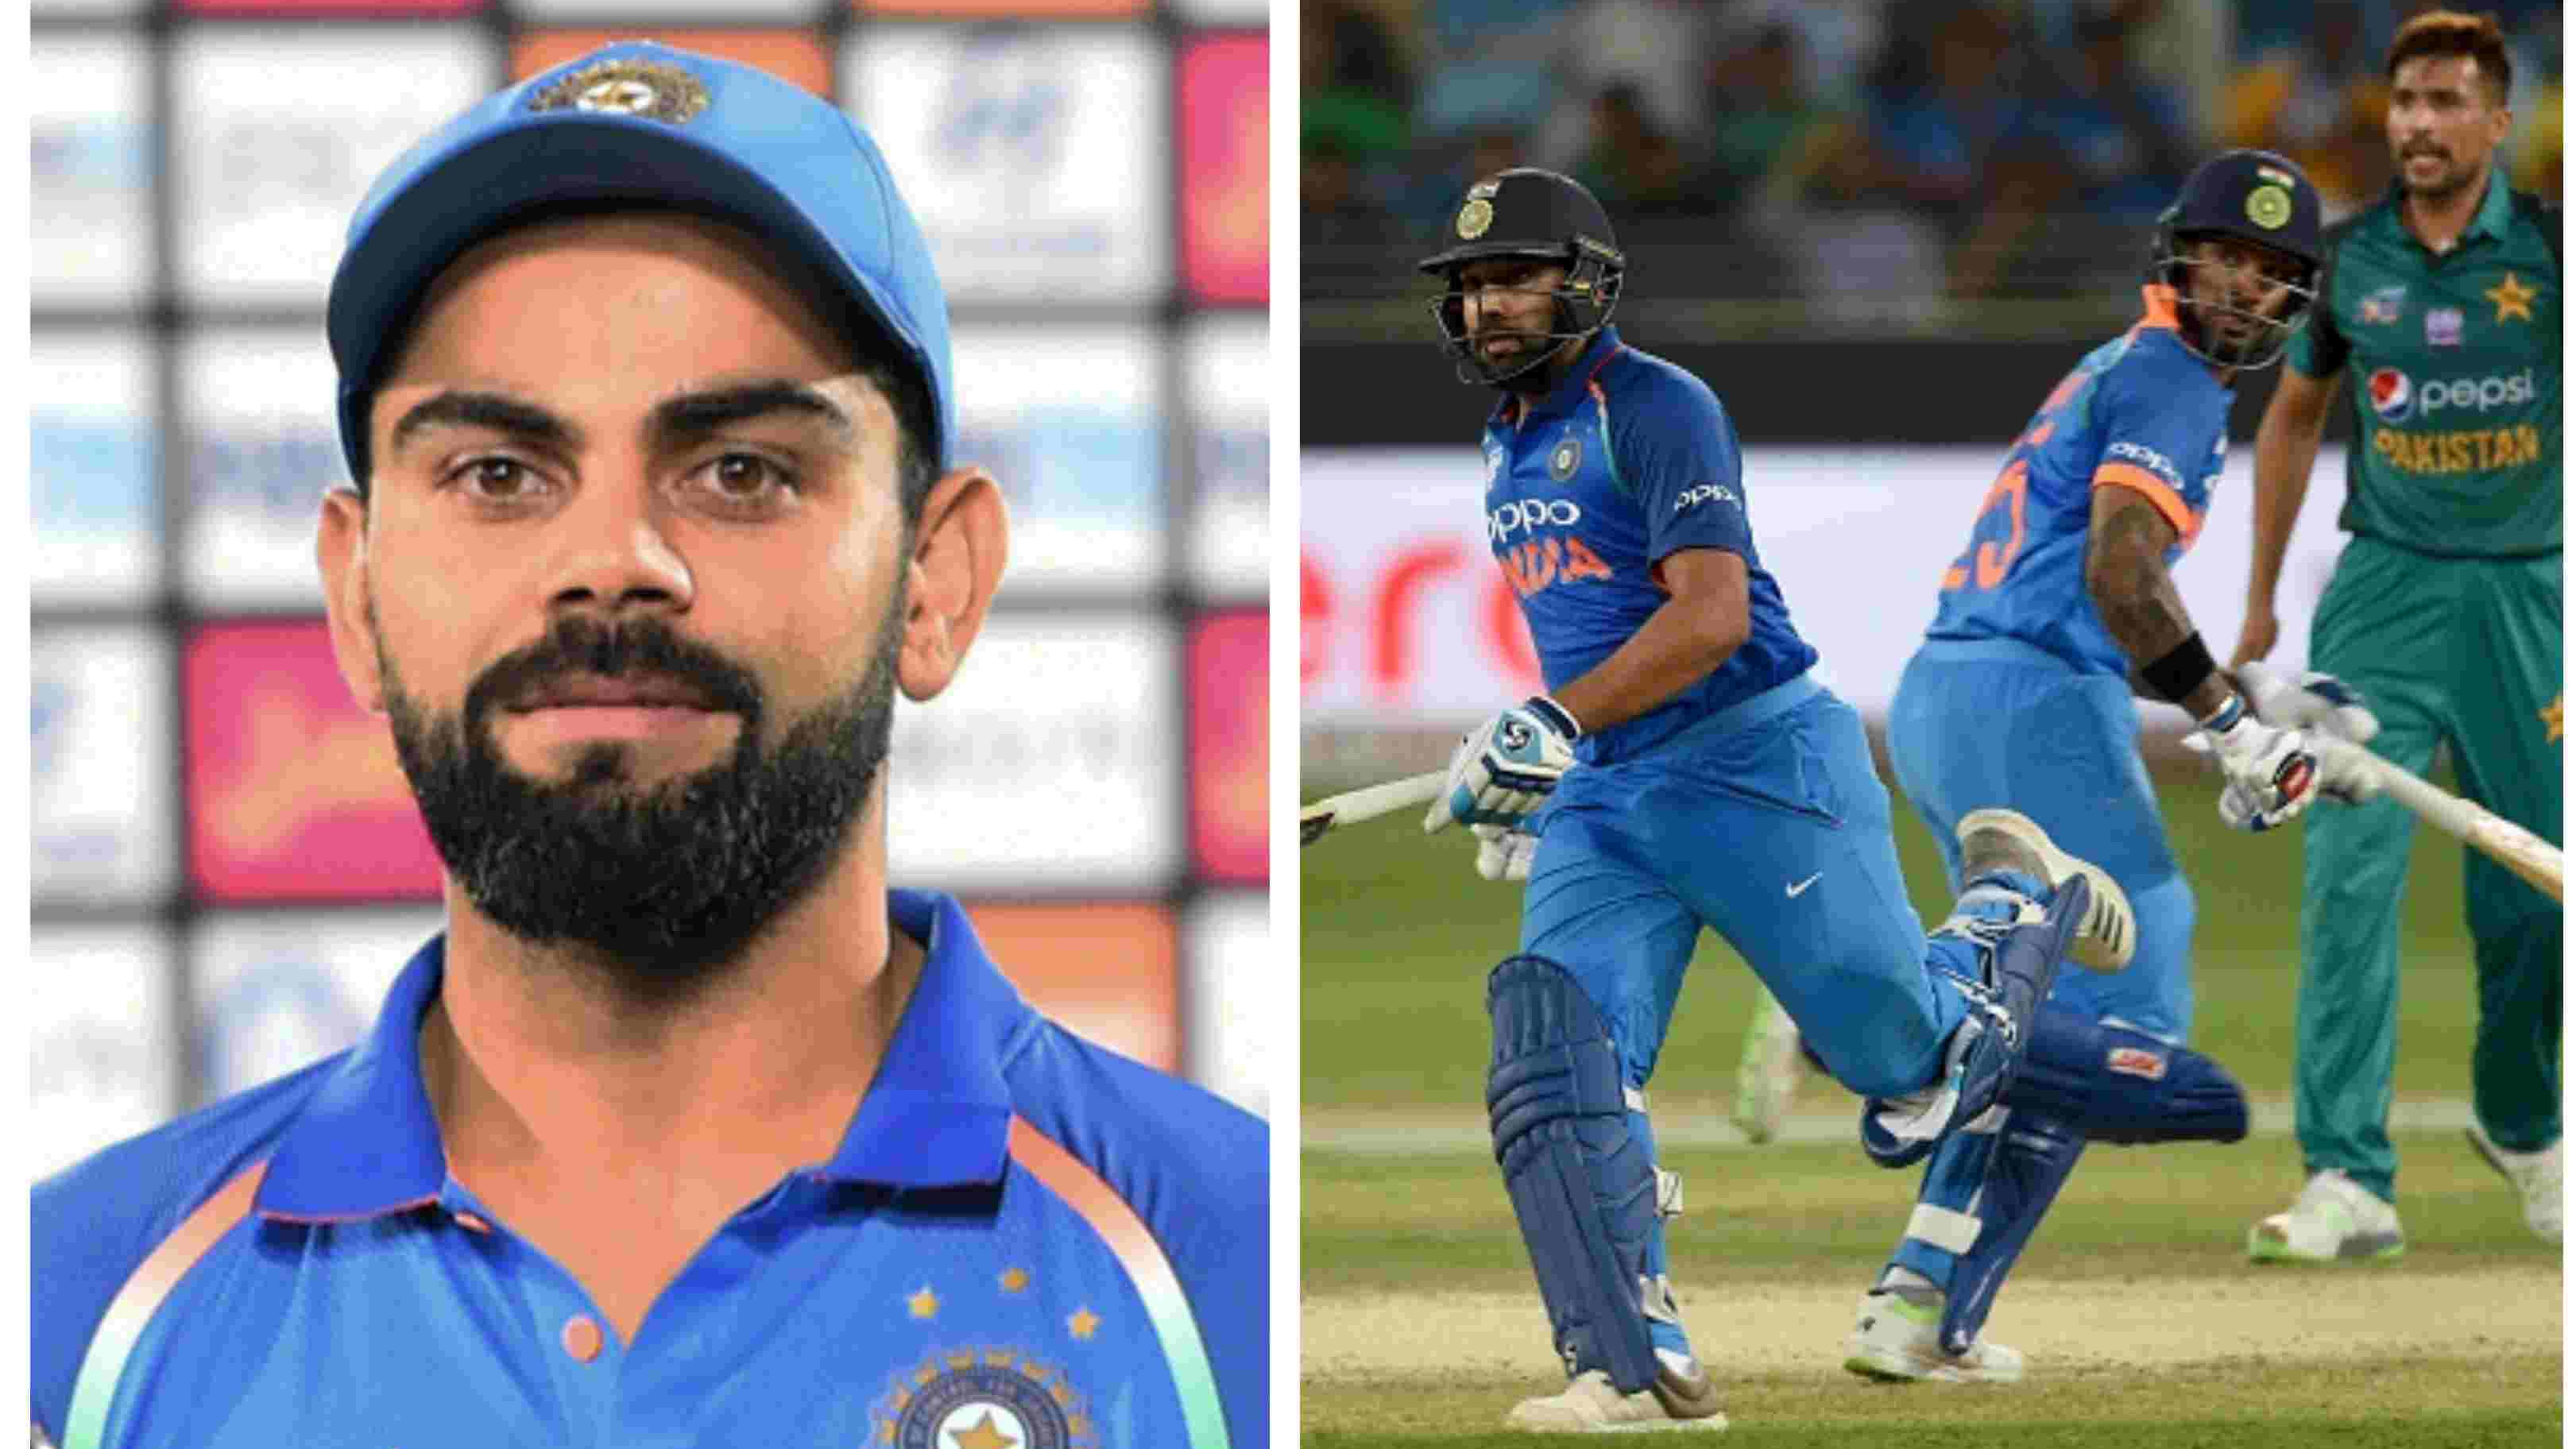 ASIA CUP 2018: Virat Kohli lauds Team India after a resounding win over Pakistan